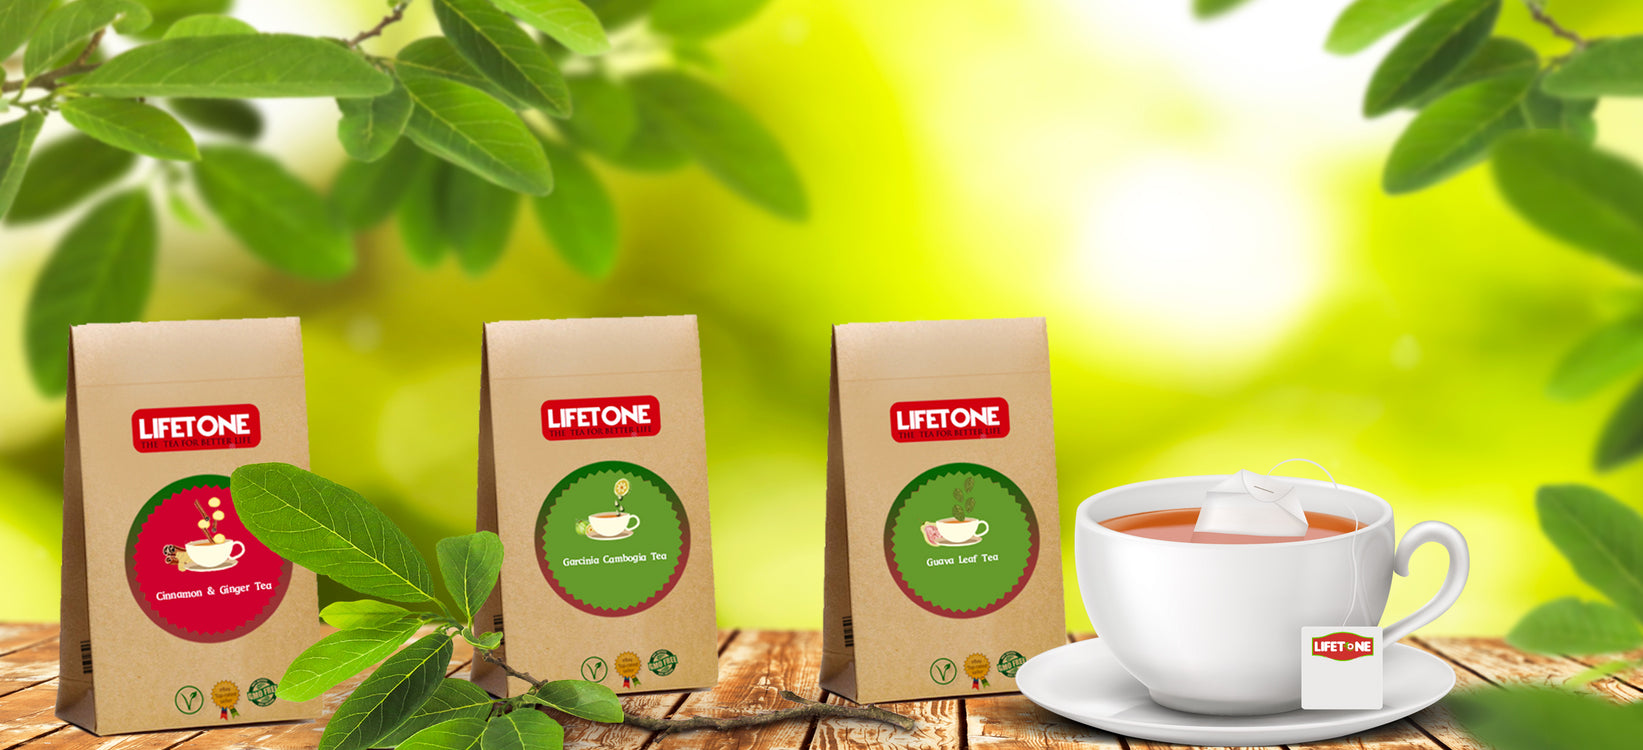 Lifetone Nature's Tea